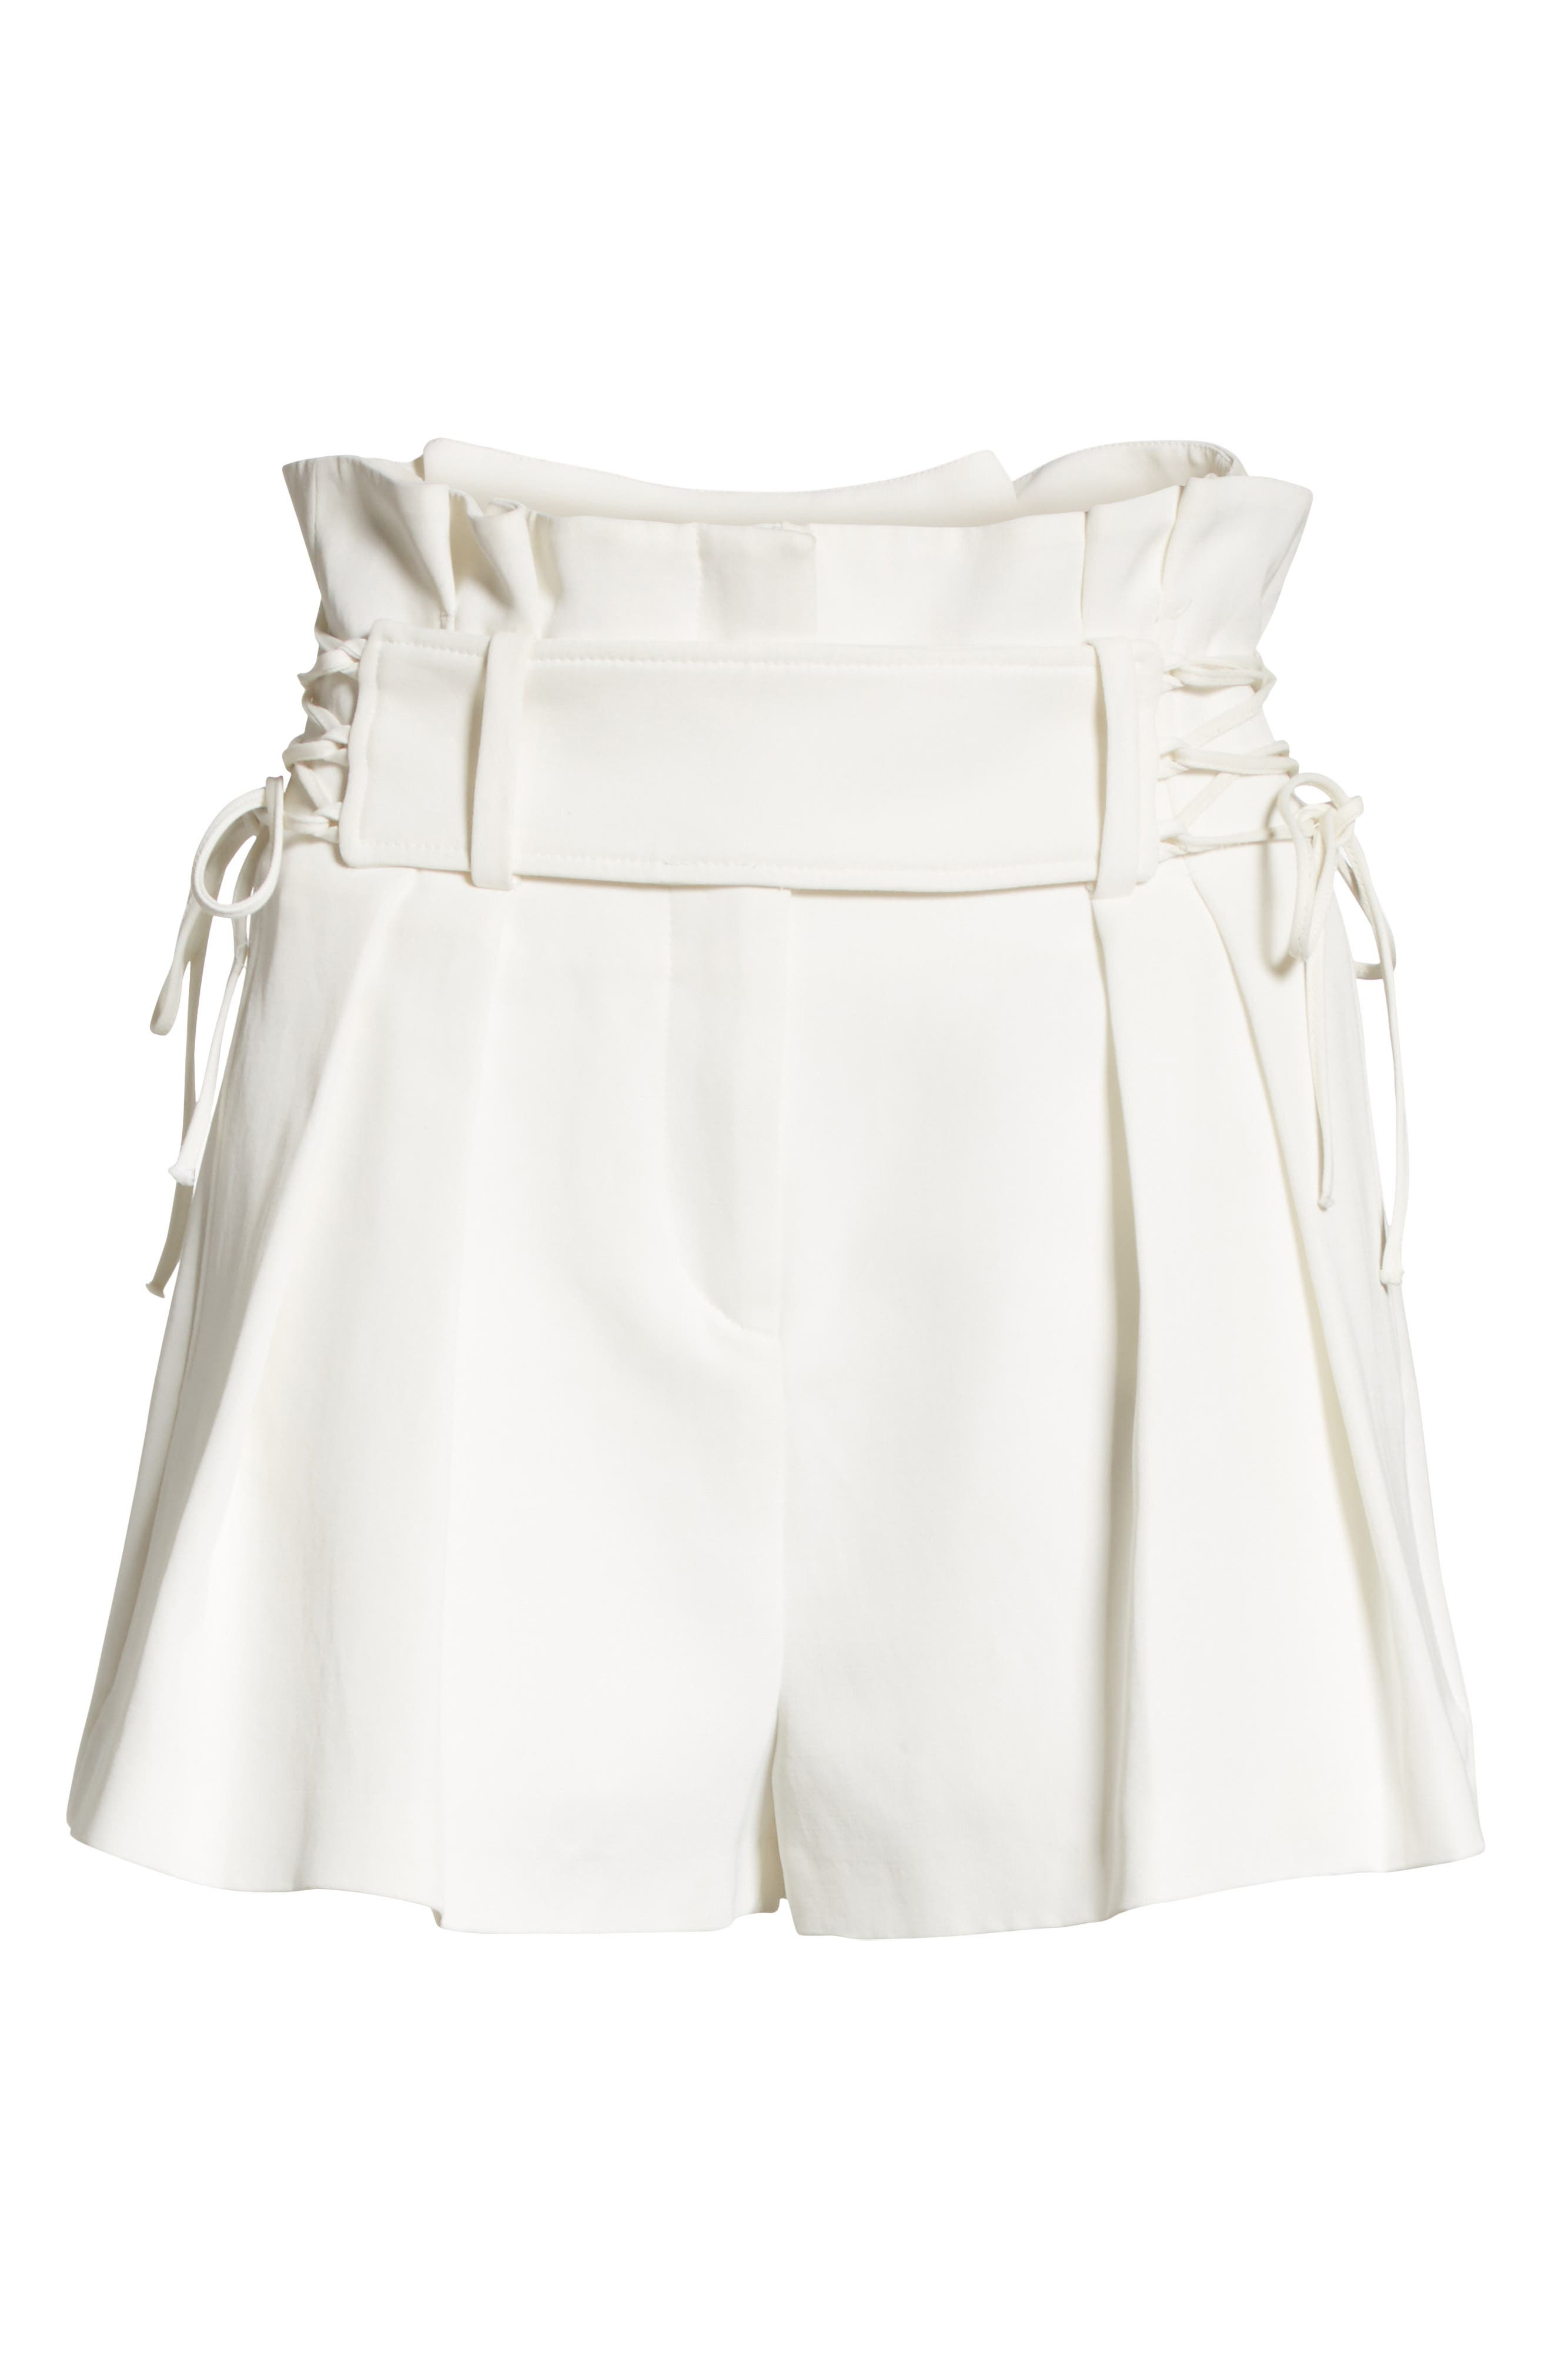 Lalora High Waist Lace-Up Shorts,                             Alternate thumbnail 6, color,                             White